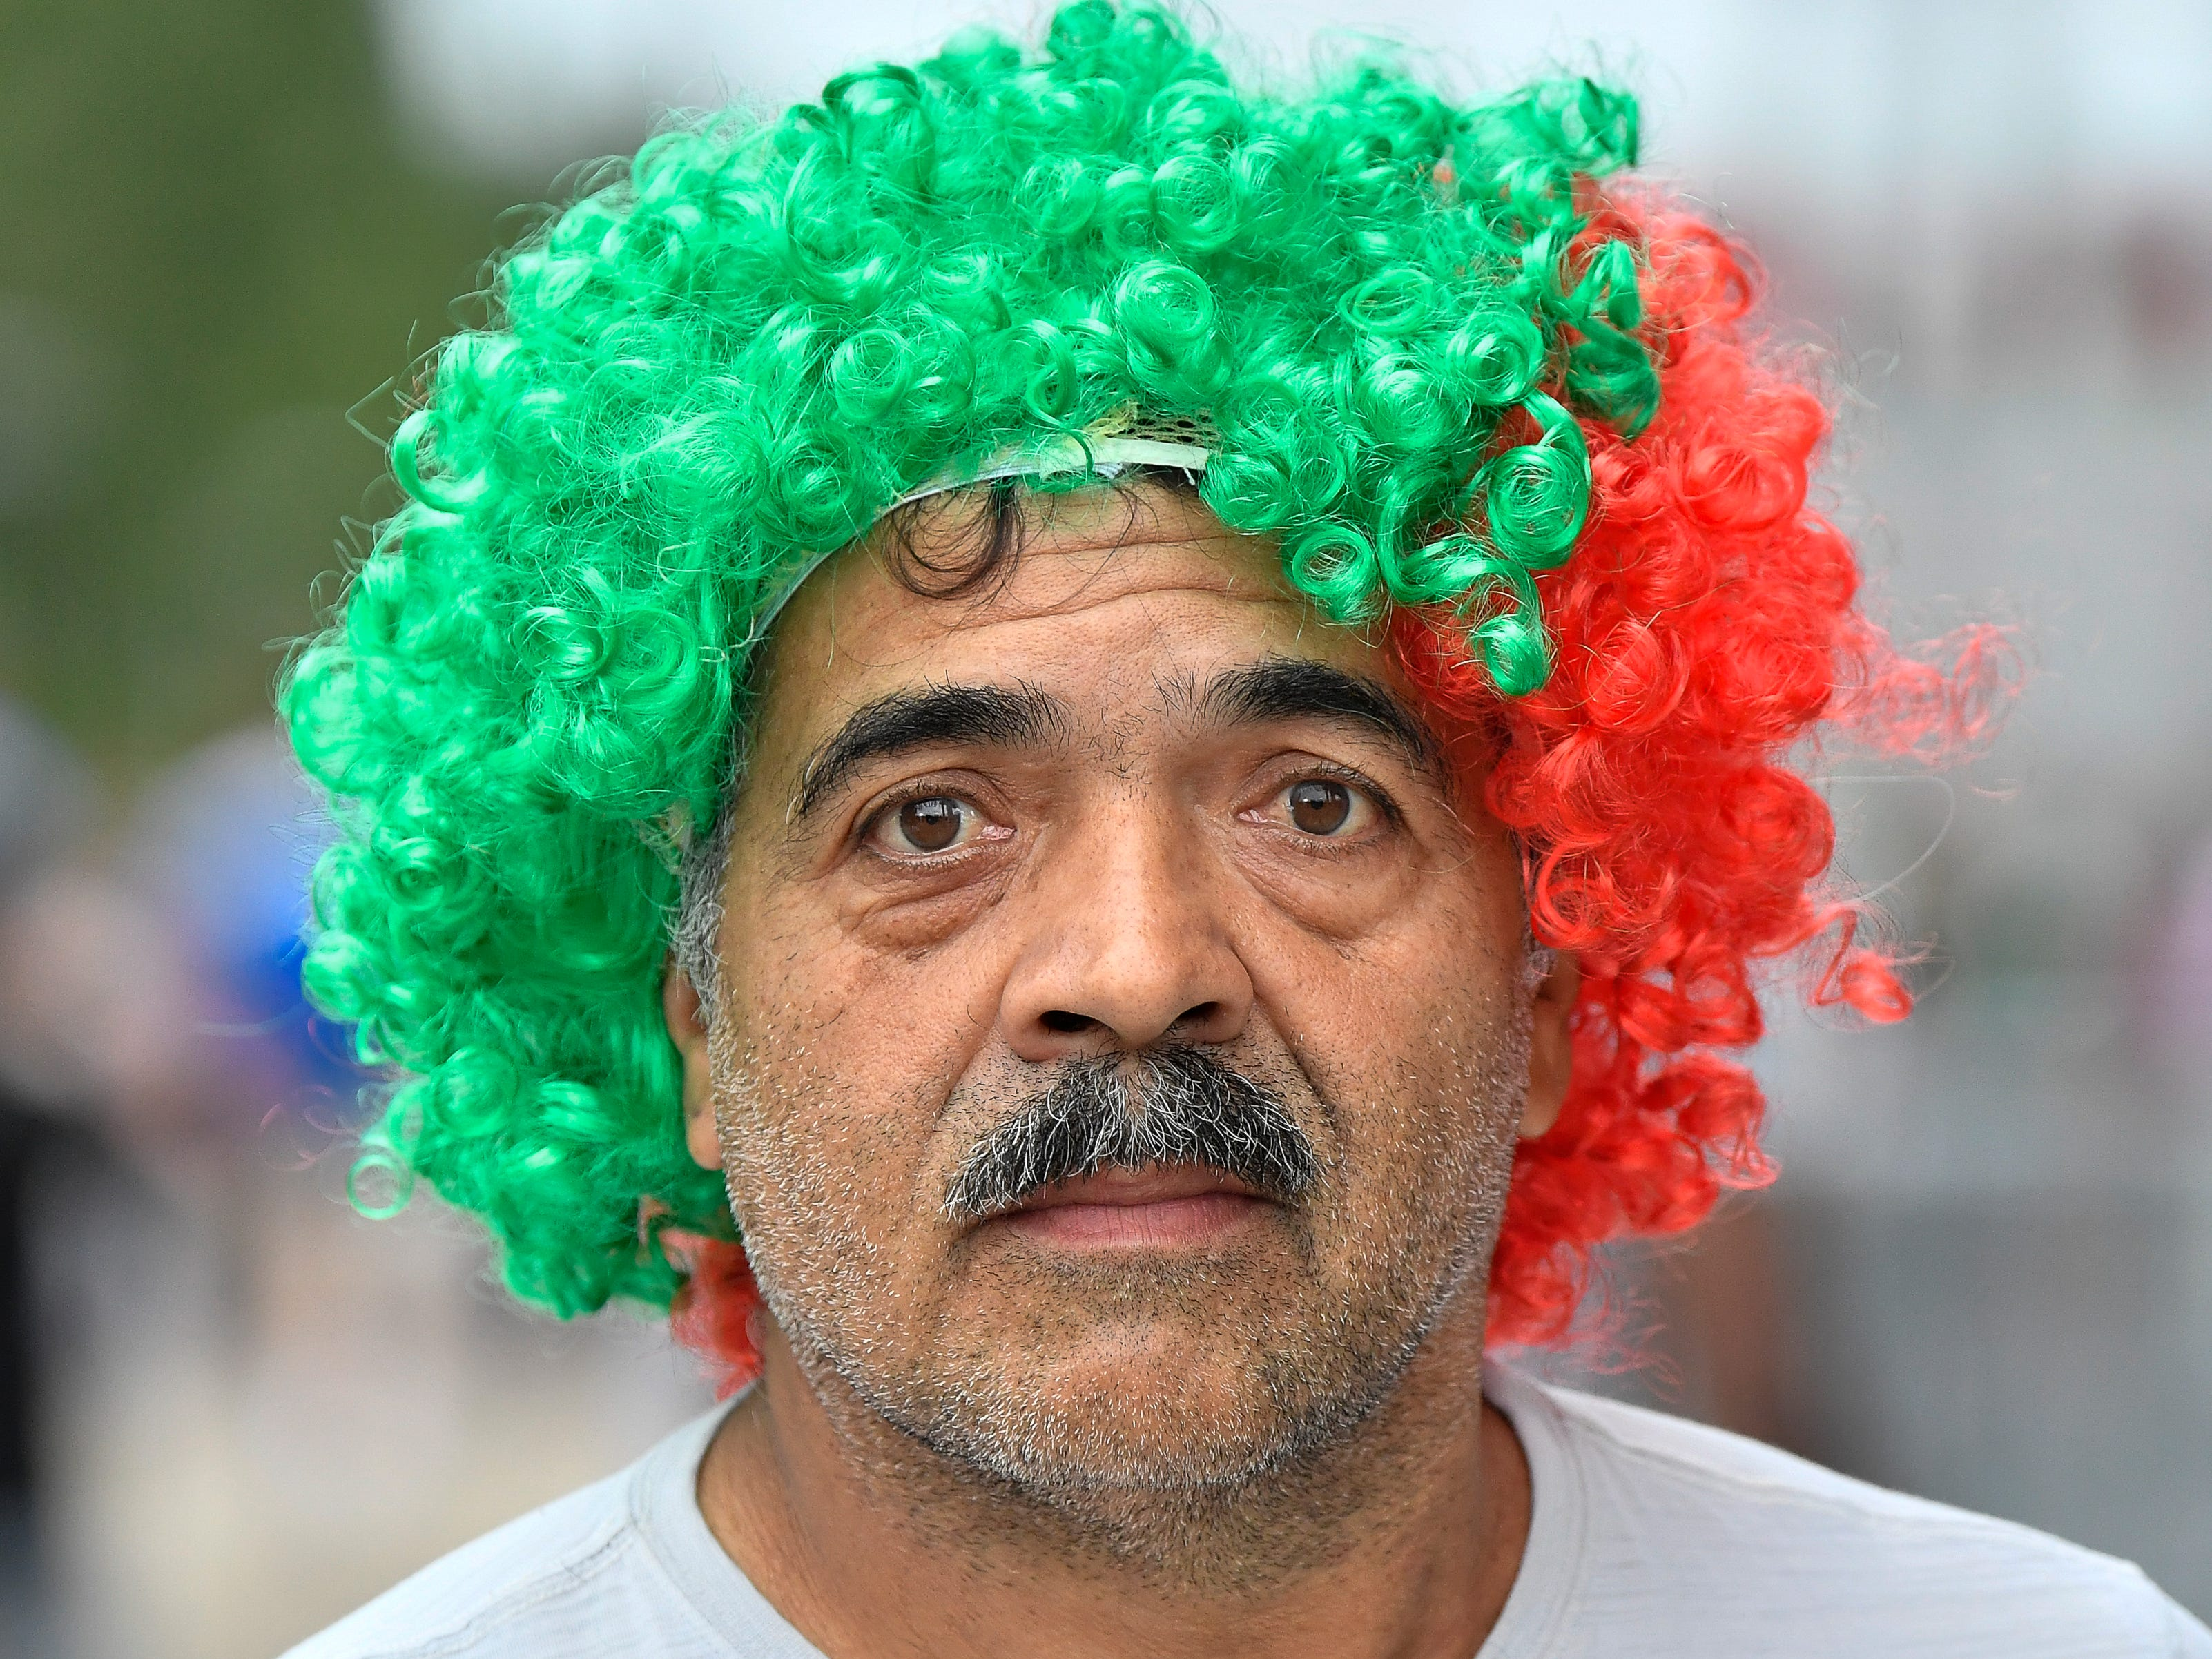 Mexican soccer fan Noe Nolasco wears his country's colors on his head before the USA vs. Mexico Soccer match at Nissan Stadium Tuesday, Sept. 11, 2018, in Nashville, Tenn.